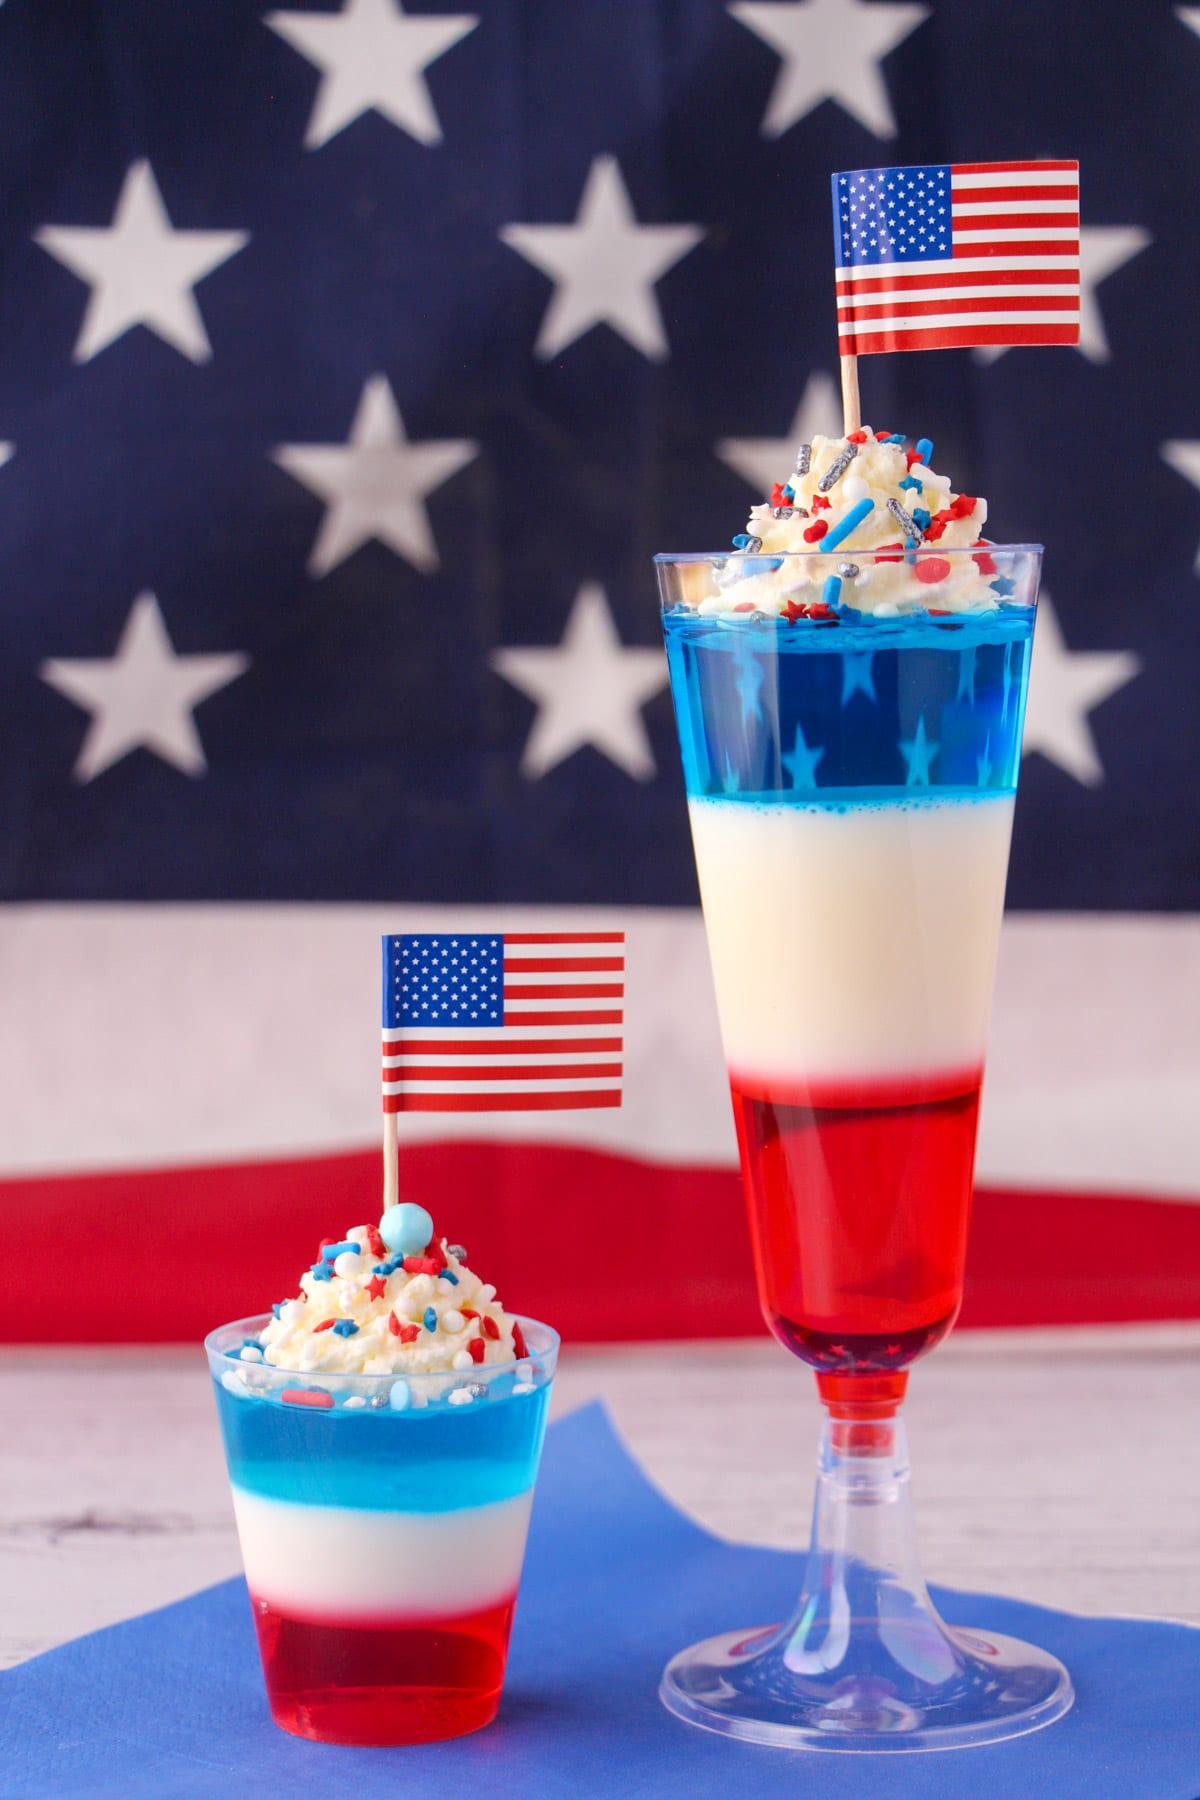 Kid friendly non alcoholic and alcoholic red white and blue jello shots in tall glasses with whipped cream, sprinkles, cocktail stick American flags with American flag in the background.